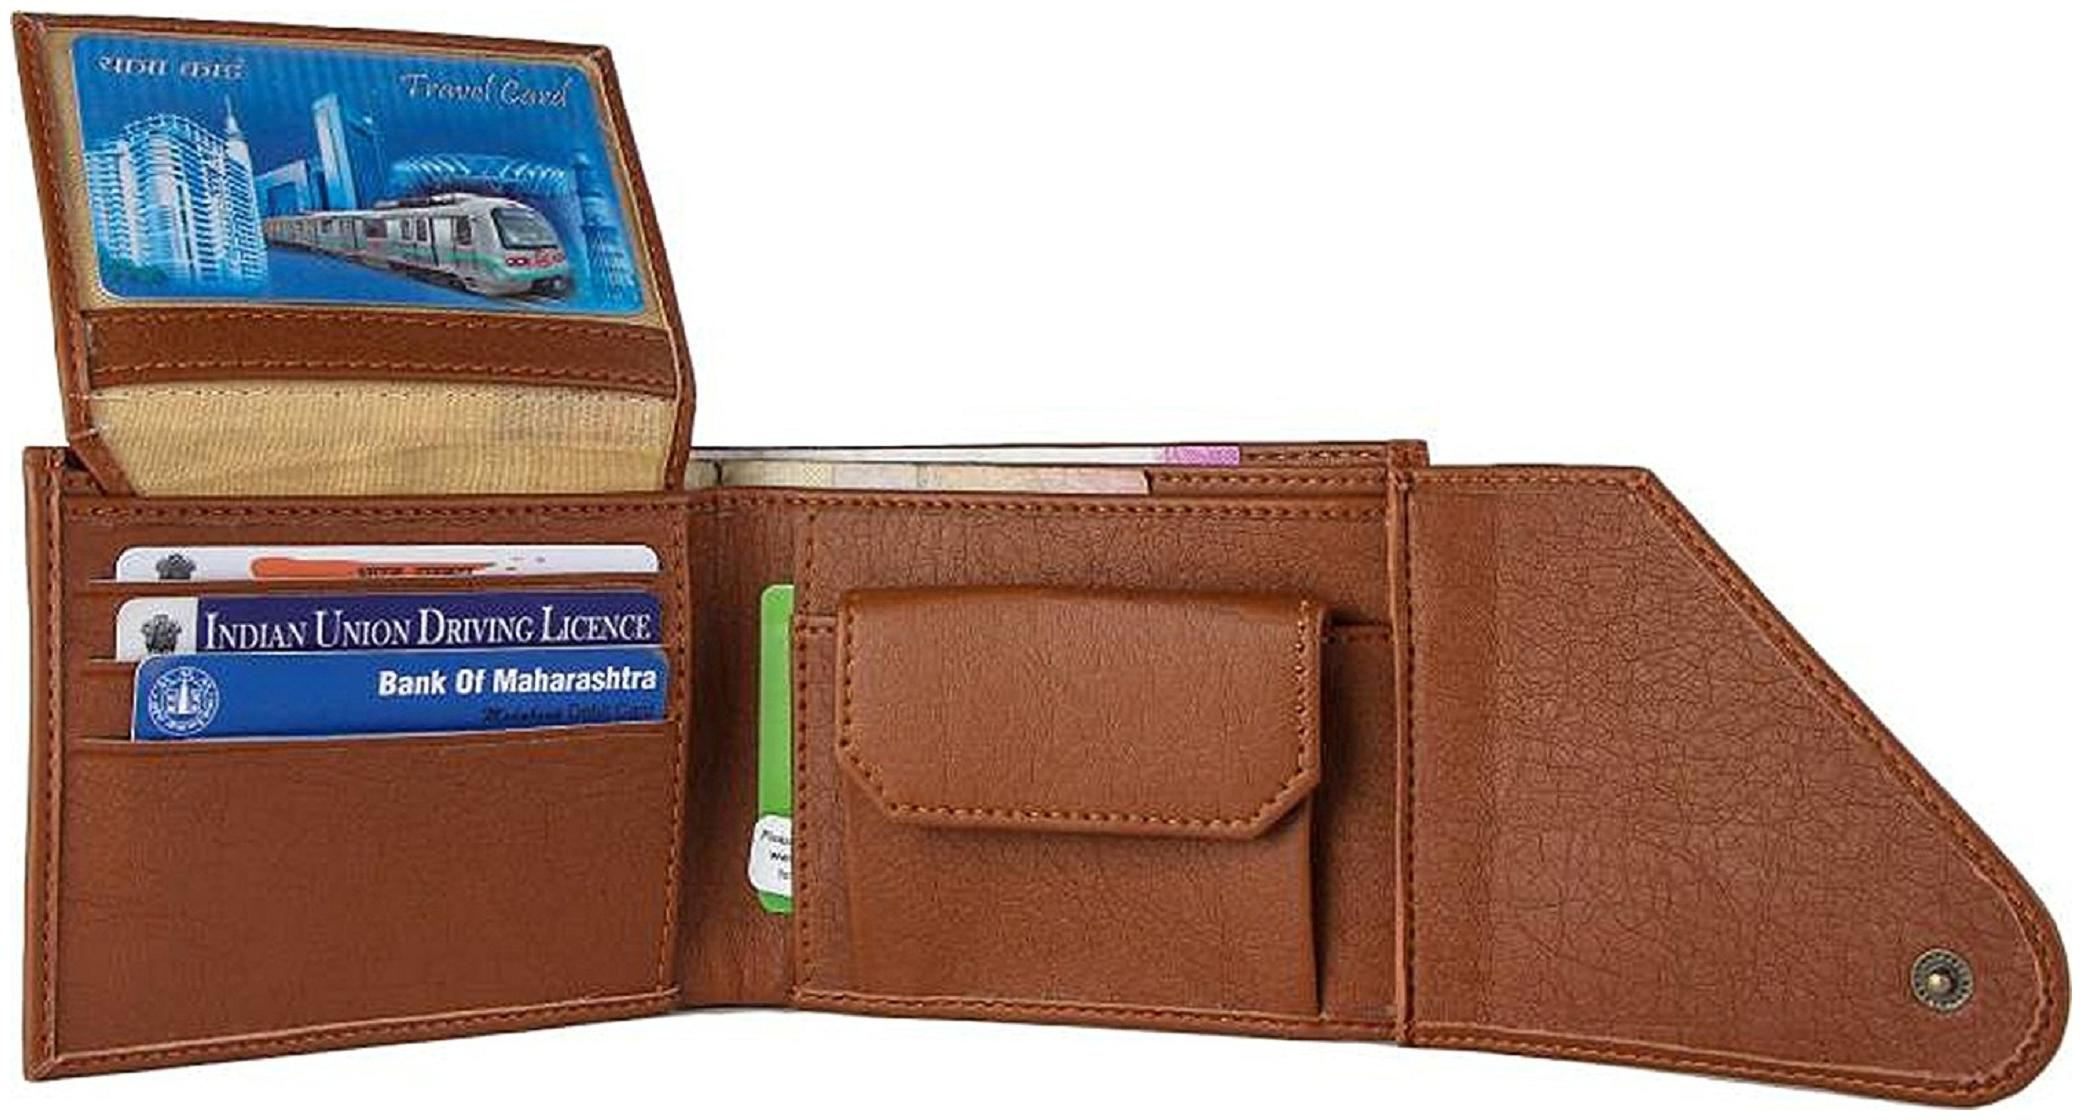 Men Stylish Wallet, PU Leather, Tan in colour, Tri-Fold, Hand Made, Long Lasting Quality, (Model-MW/TF/T-0004)